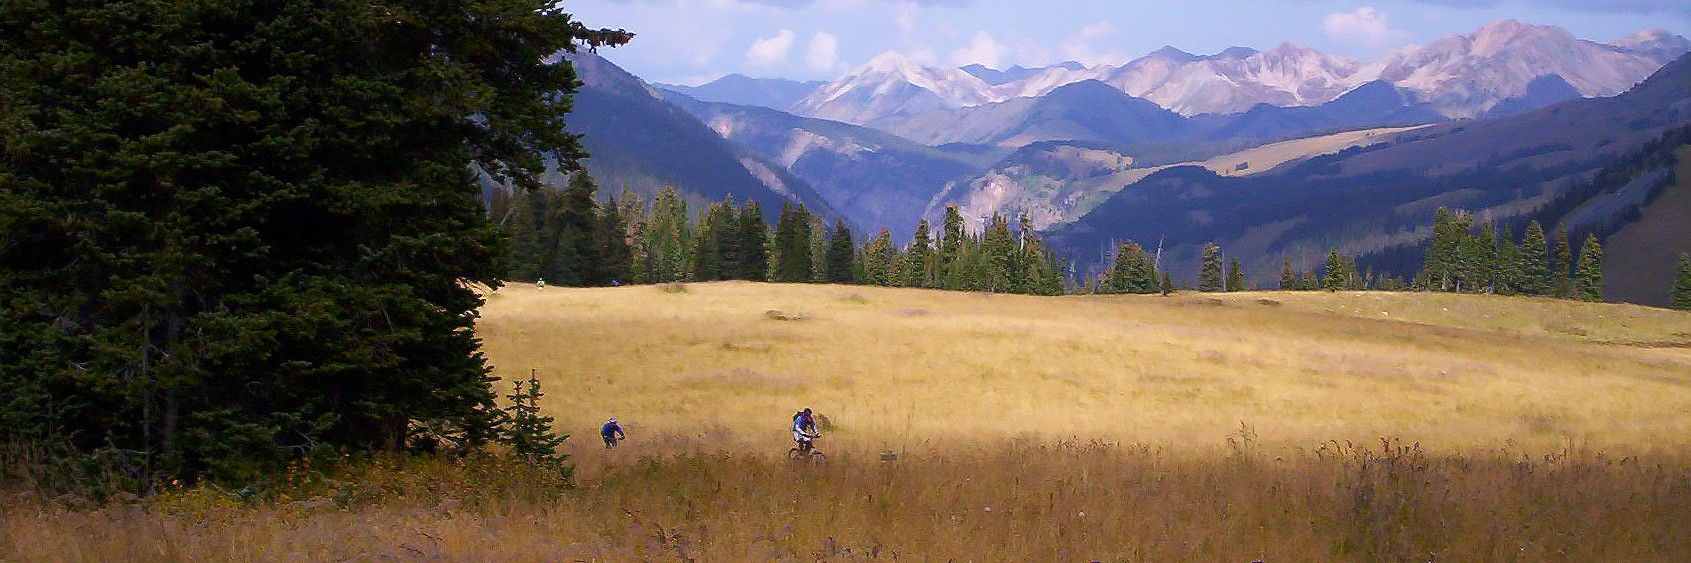 Riders cross a dry grassy meadow high up on the Crested Butte Singletrack guided mountain bike tour